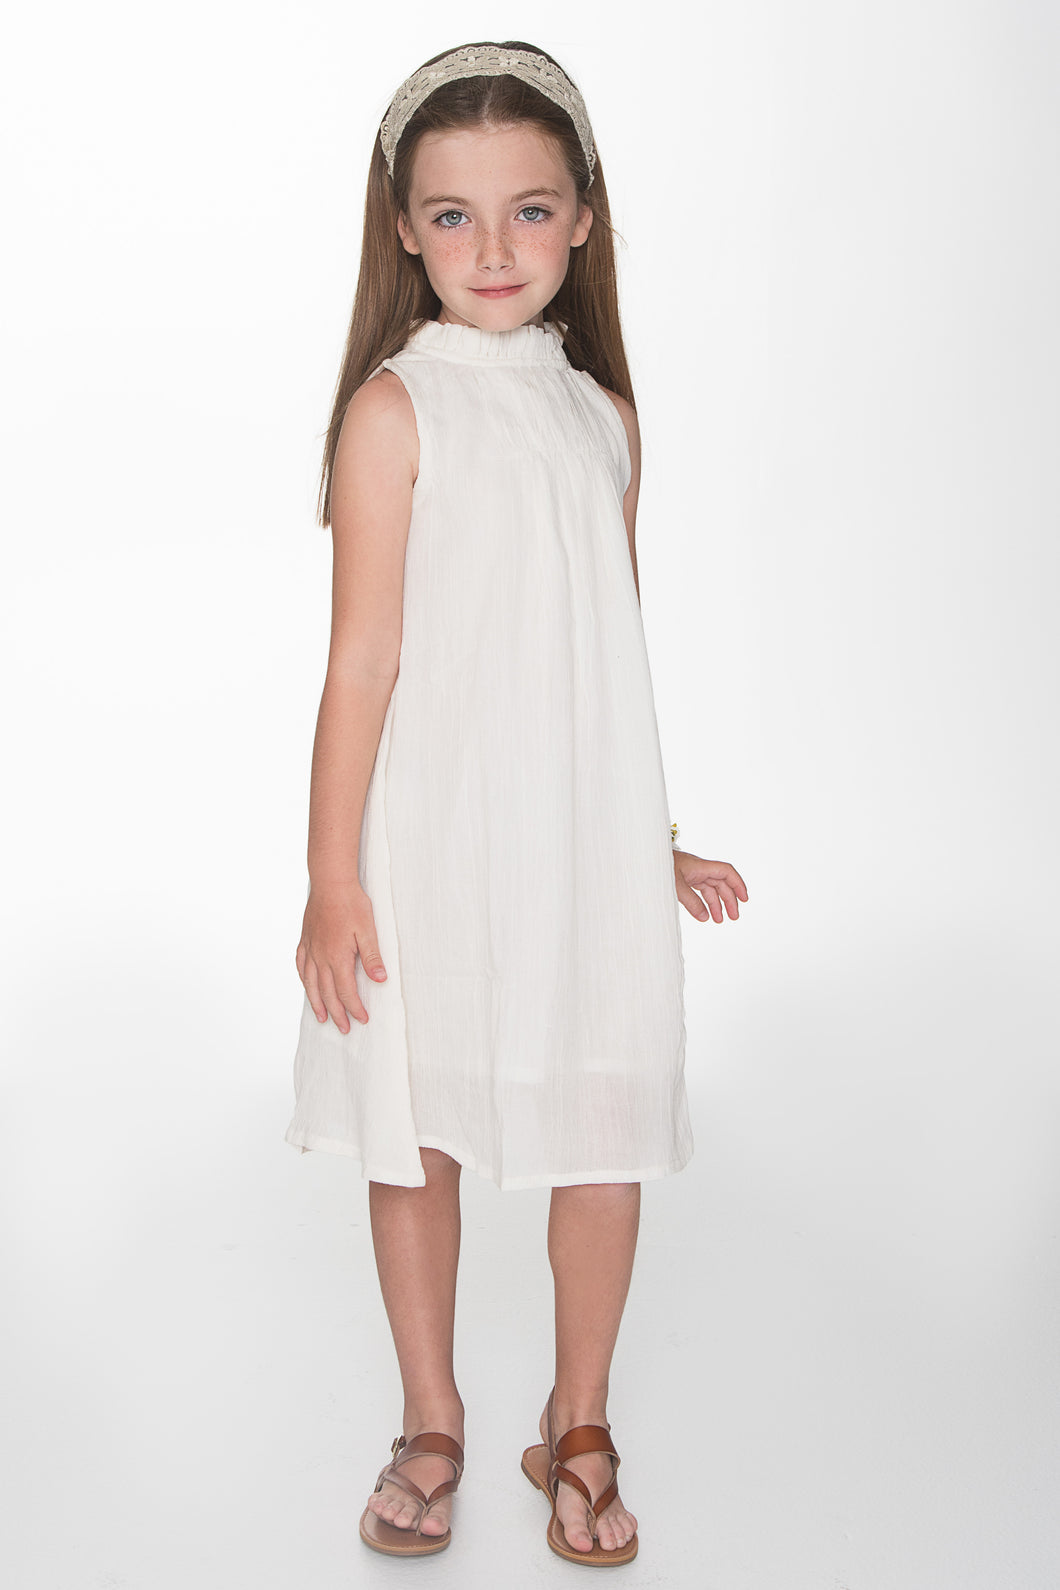 Off White Ruched Detail Shift Dress - Kids Wholesale Boutique Clothing, Dress - Girls Dresses, Yo Baby Wholesale - Yo Baby